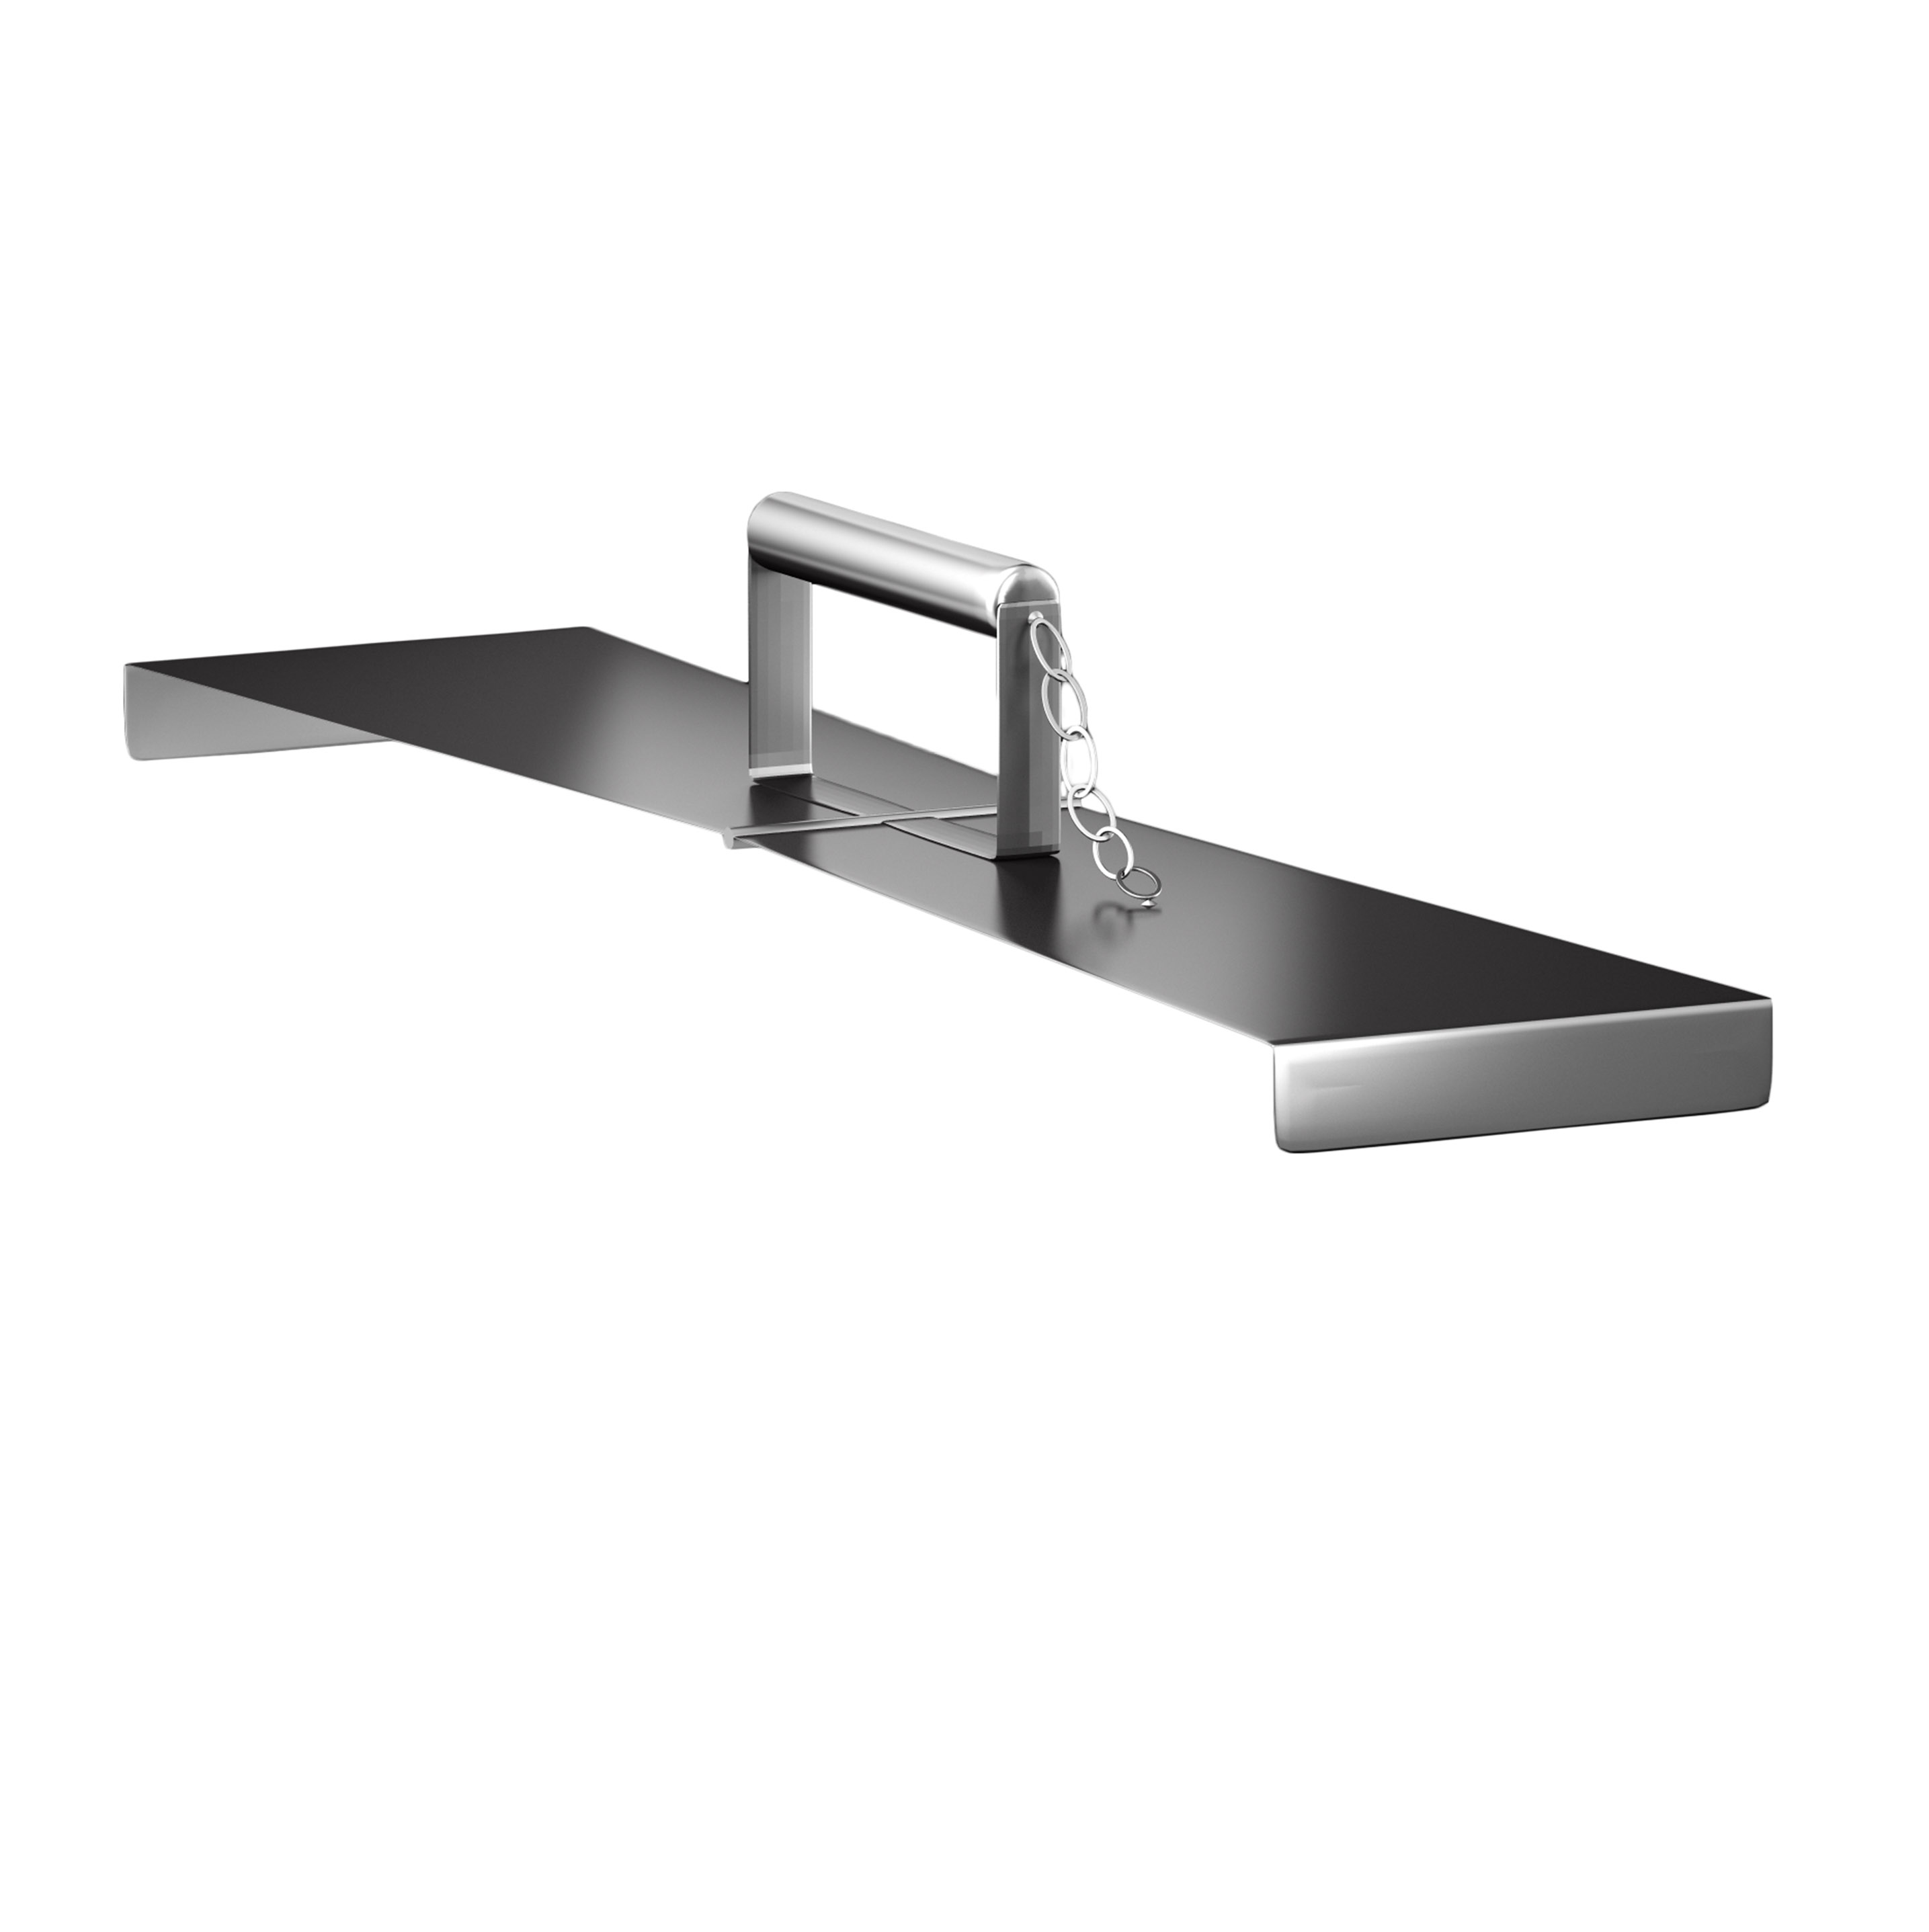 Install-Products-Photos Pedestals Gallery Accessories-lifting-handle-Gallery